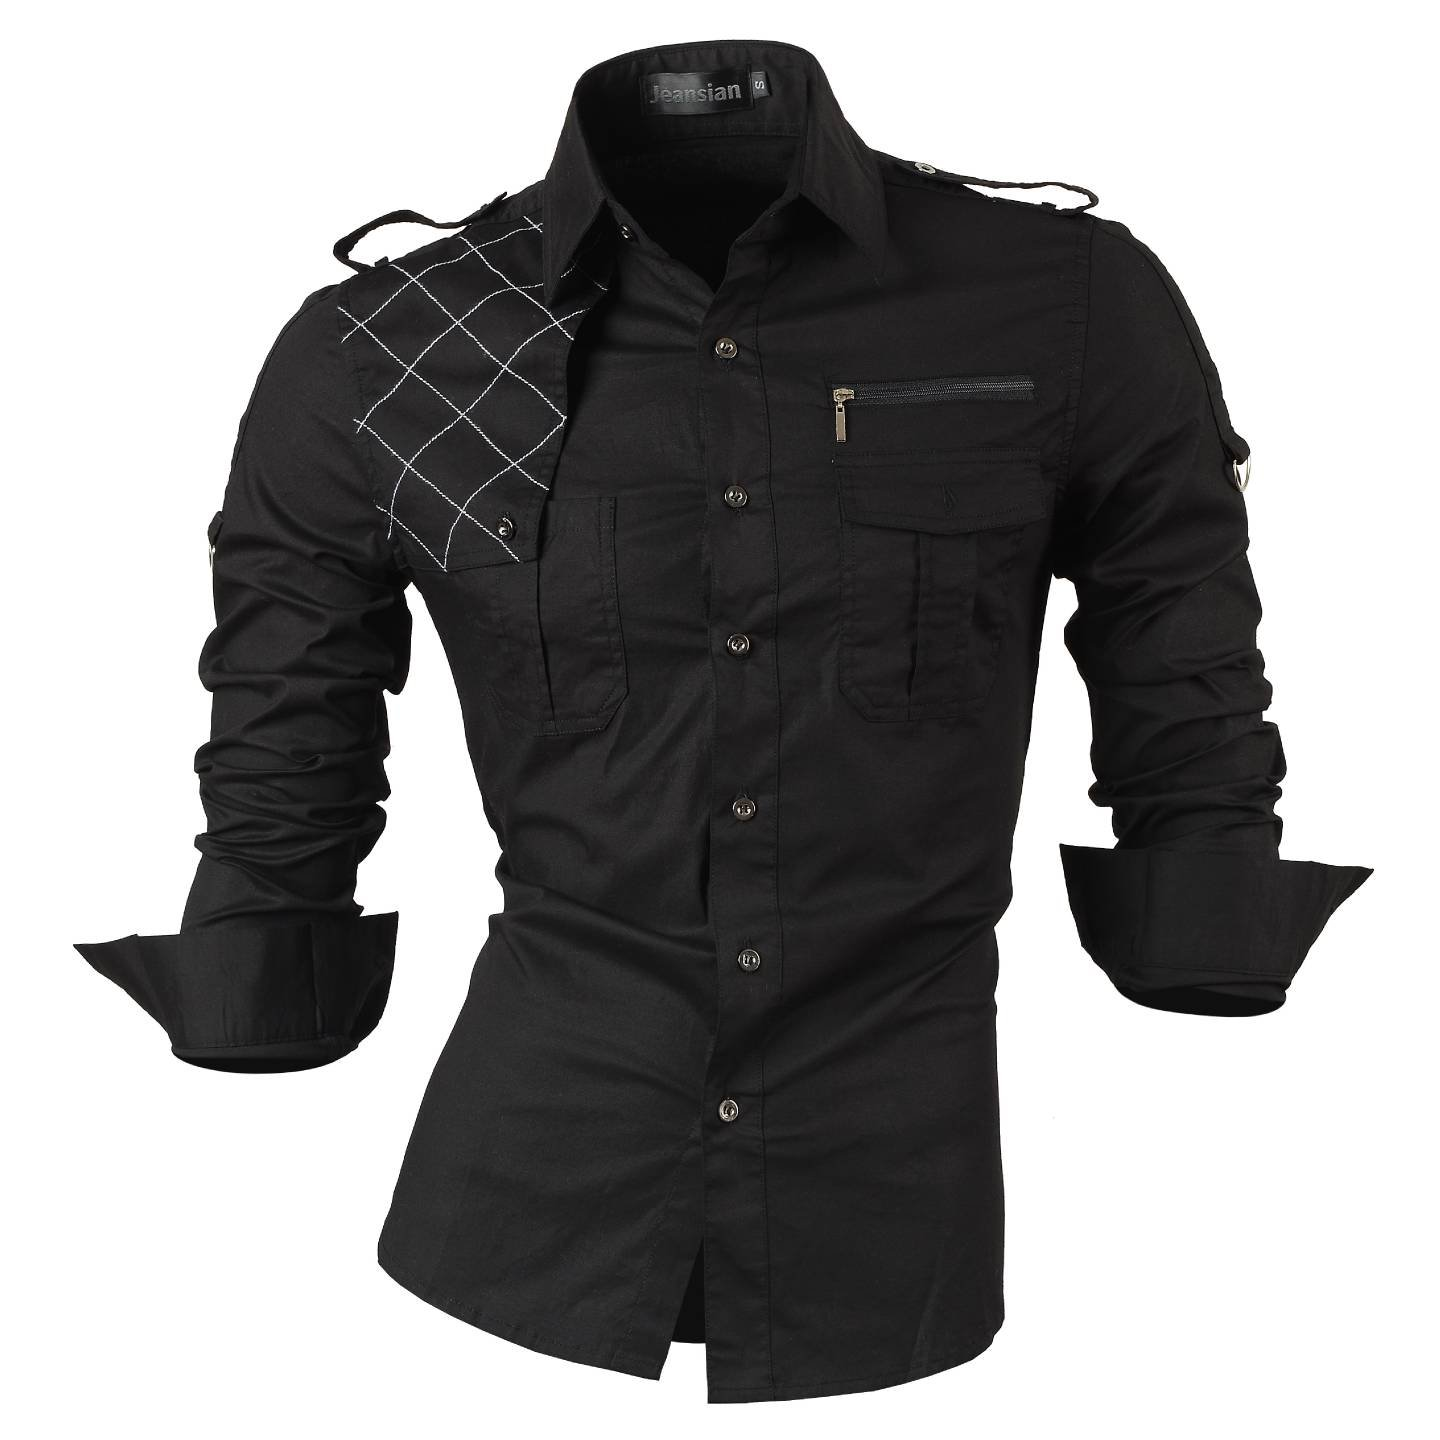 Steampunk Men's Shirts jeansian Mens Slim Fit Long Sleeves Casual Button Down Dress Shirts 8397 $19.99 AT vintagedancer.com